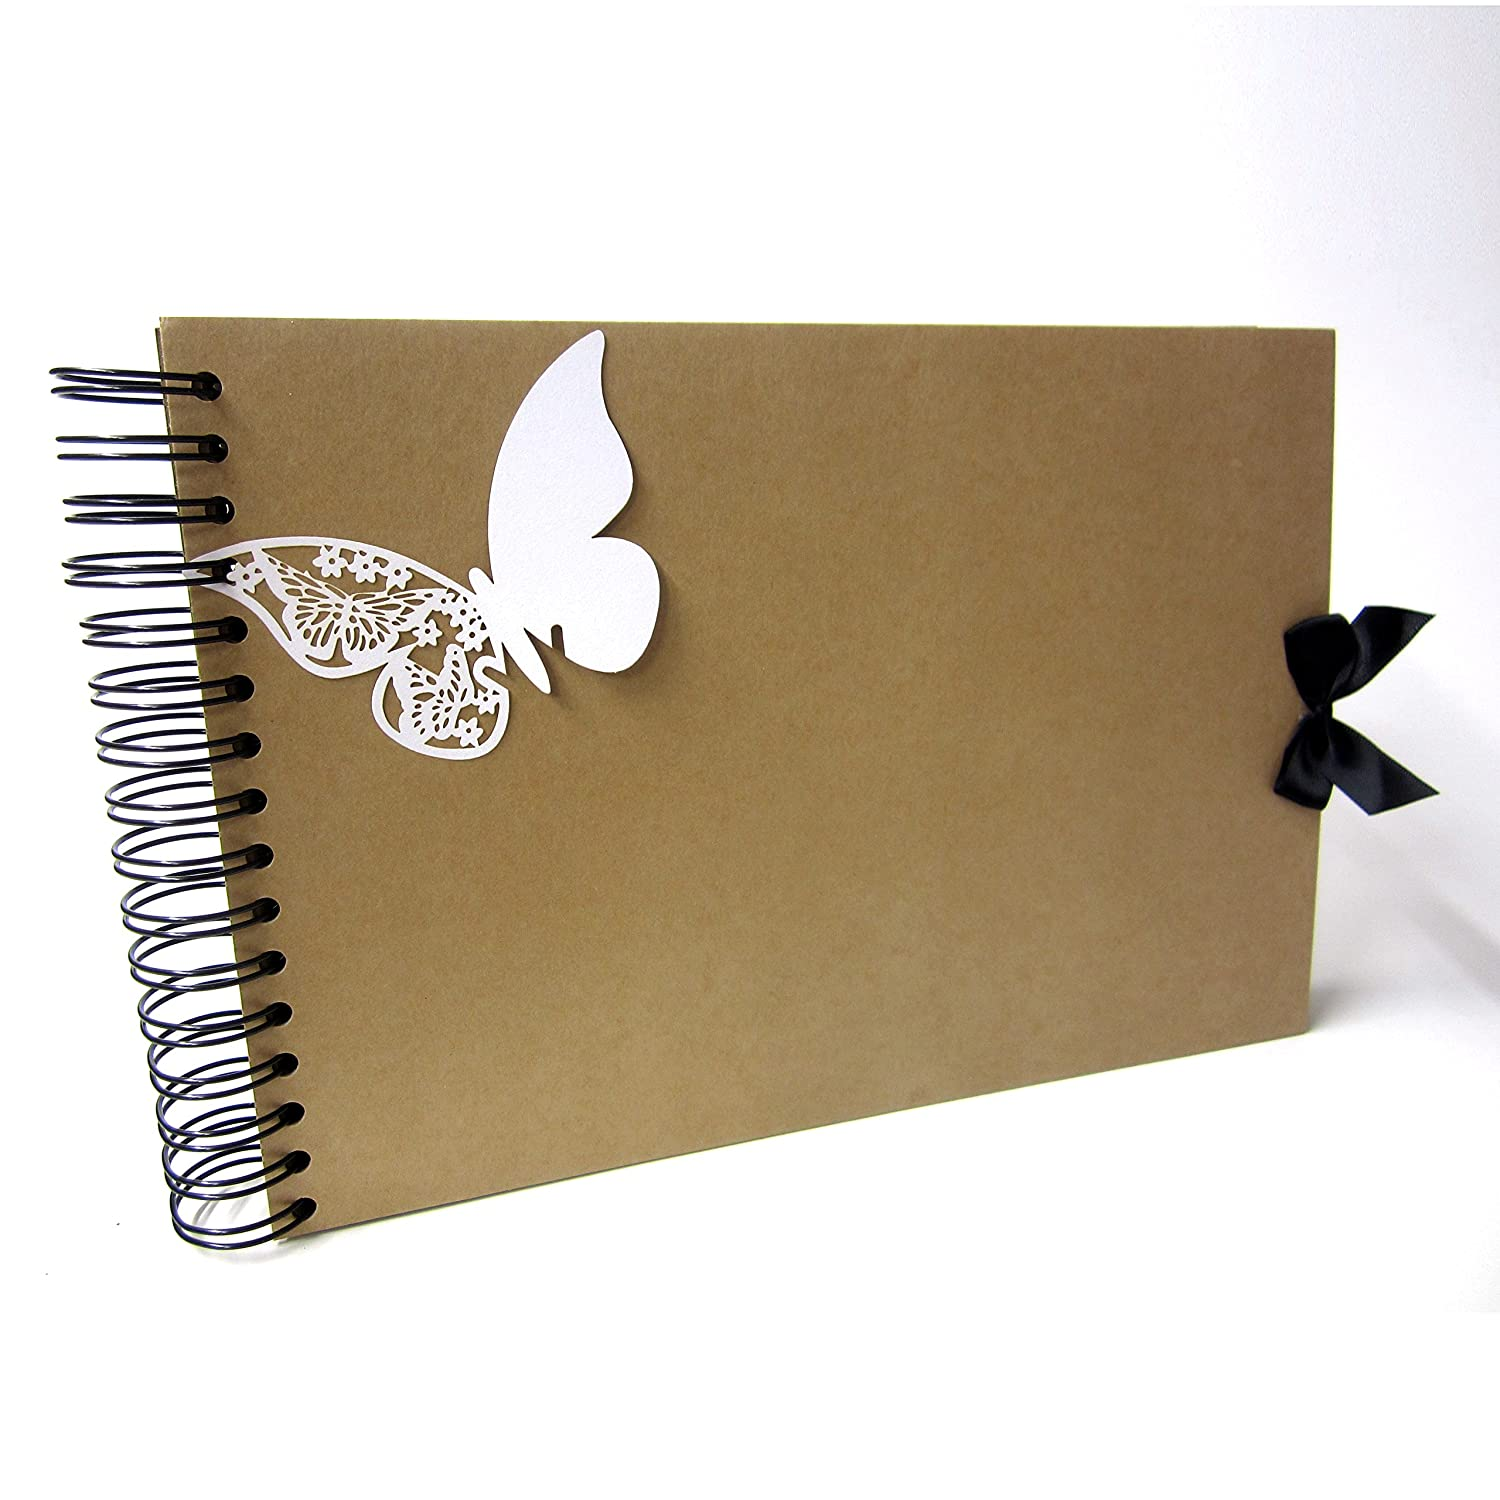 A4 Butterfly Scrapbook, Photo Album, Guestbook, Memory Keepsake, Blank Crafting (A4 (White Pages)) Scrapbook Wonderland